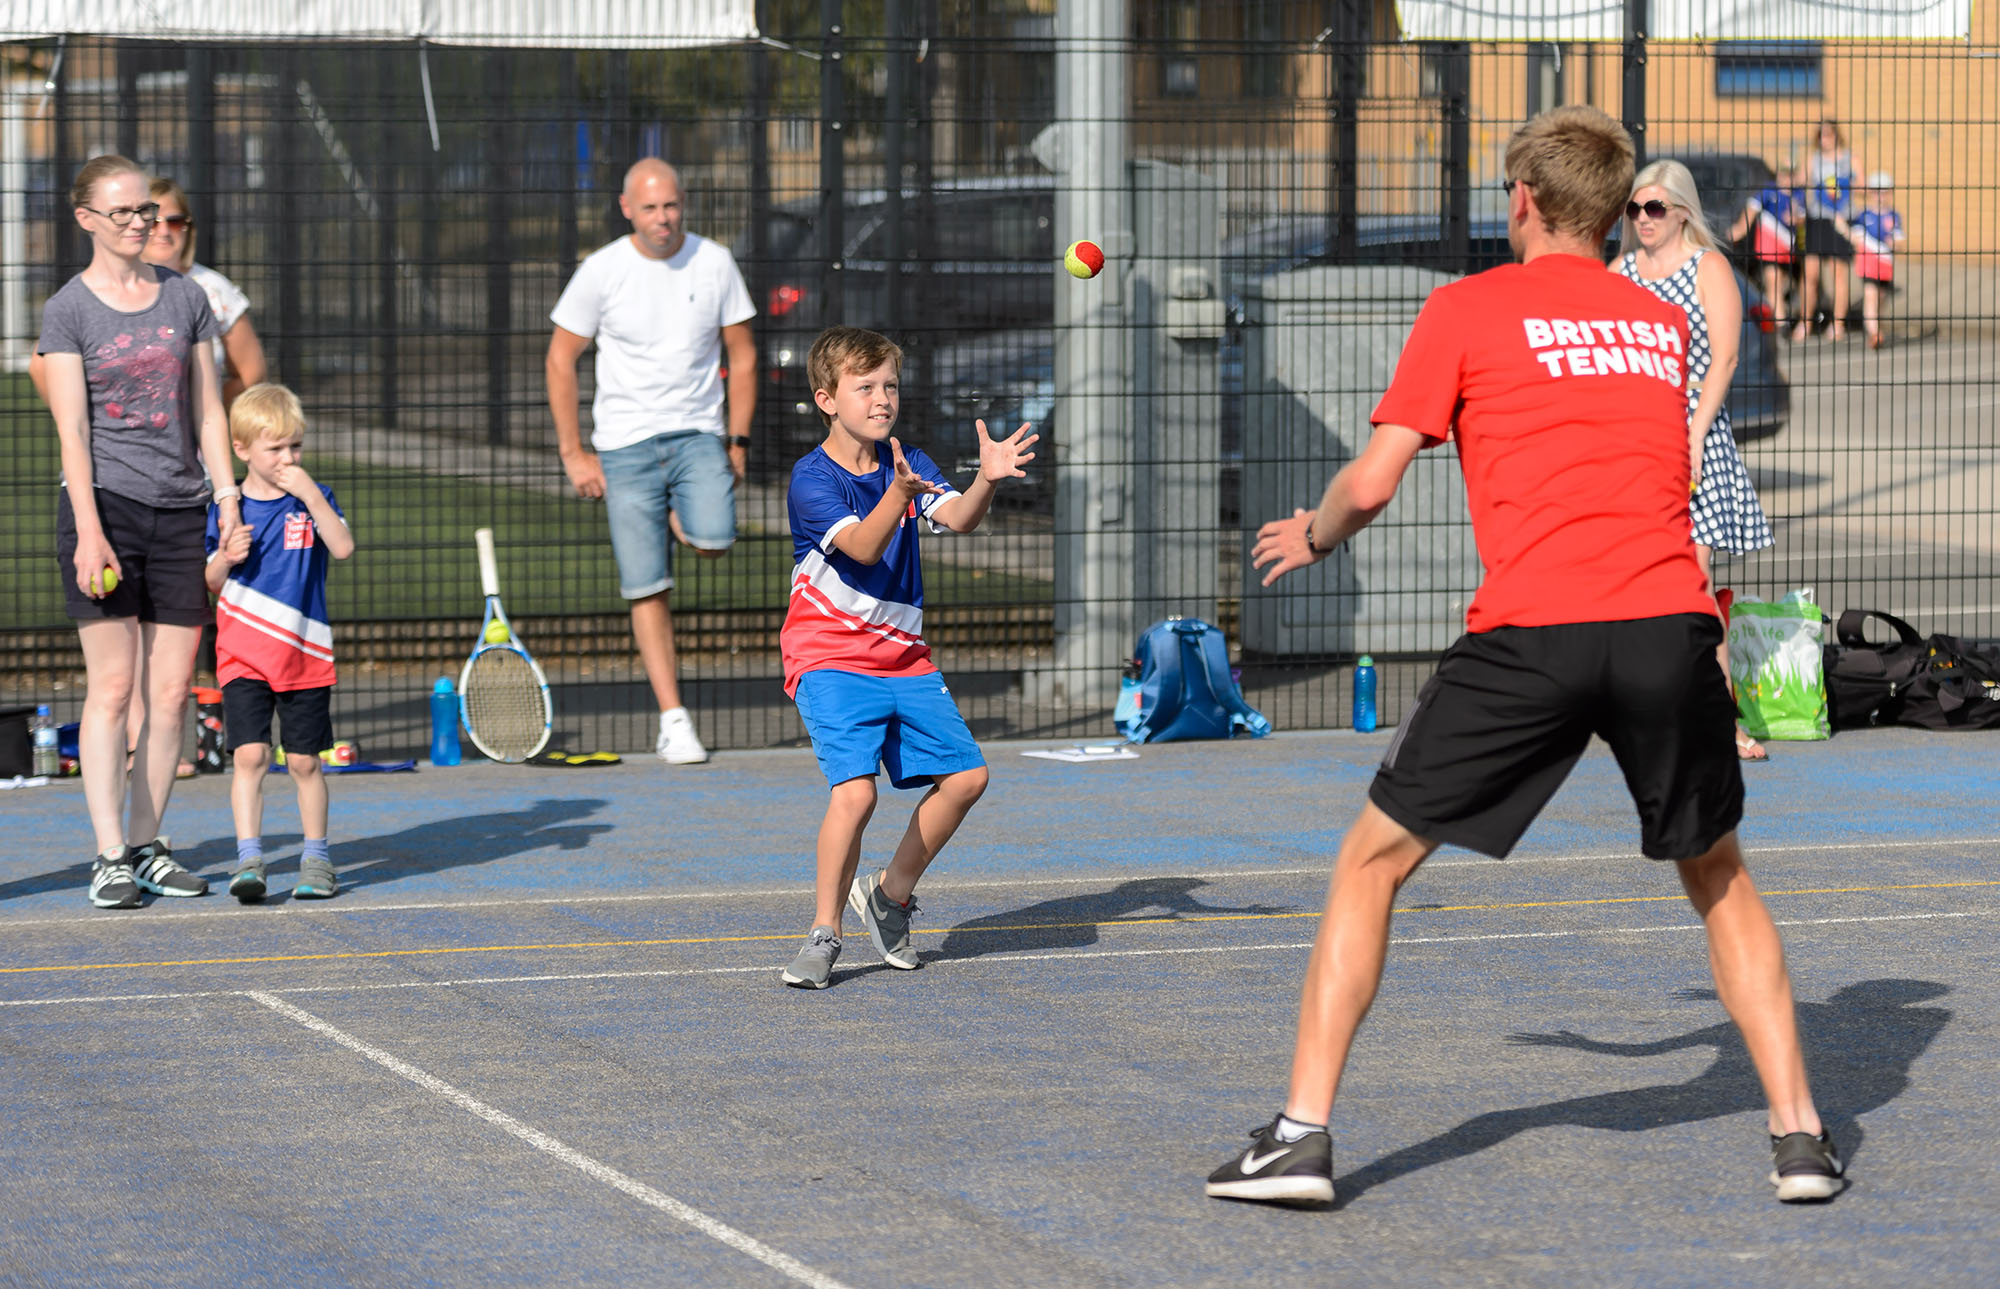 Coach throws a ball to a boy at a tennis session